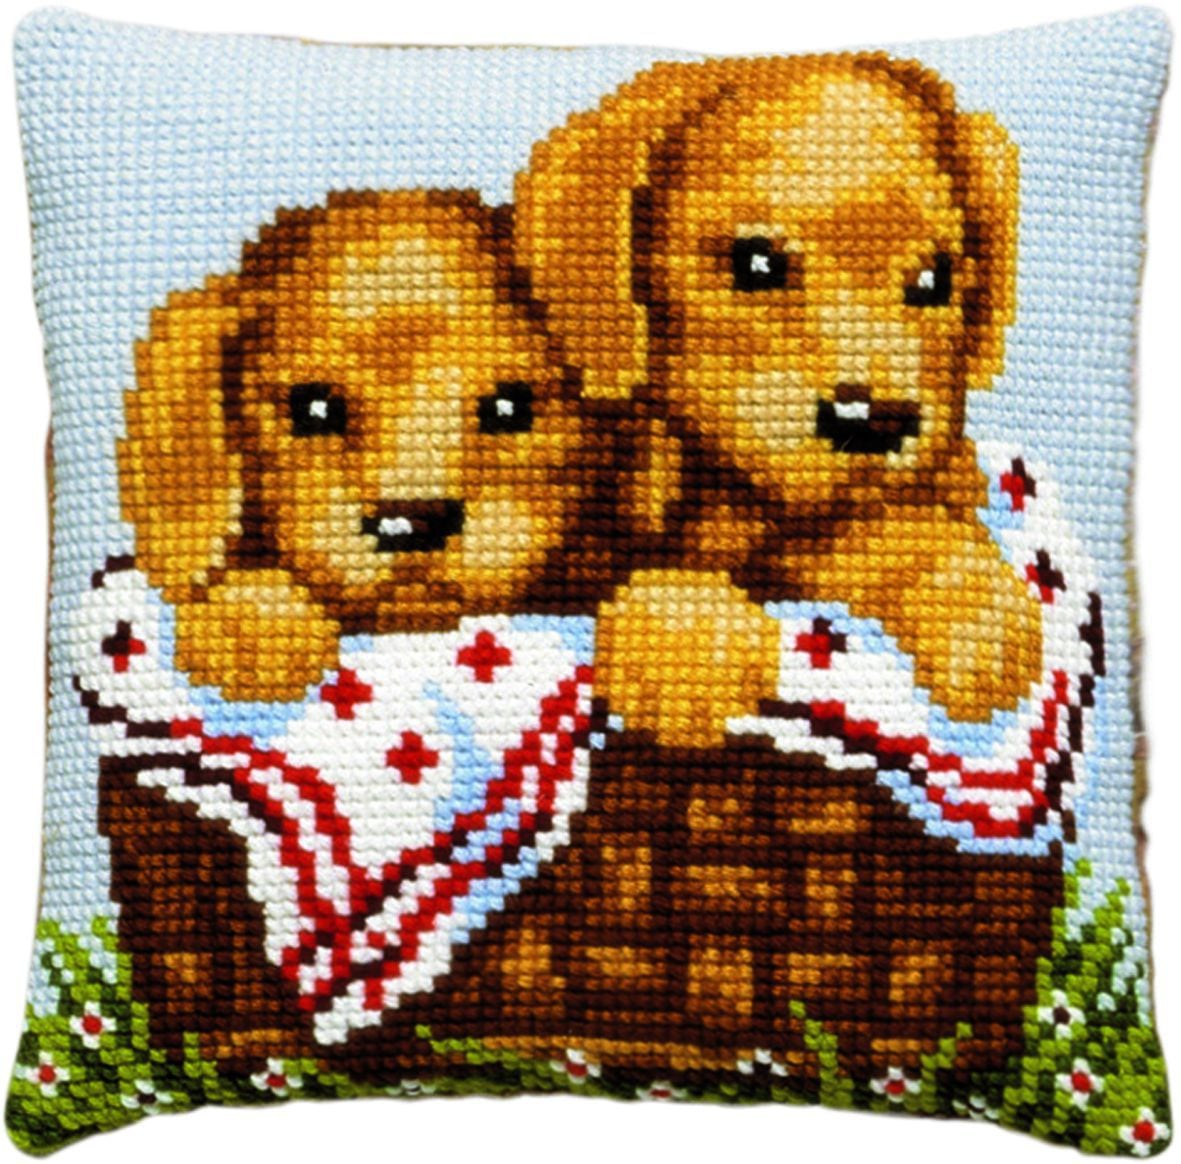 cross stitch cushion puppies in basket printed